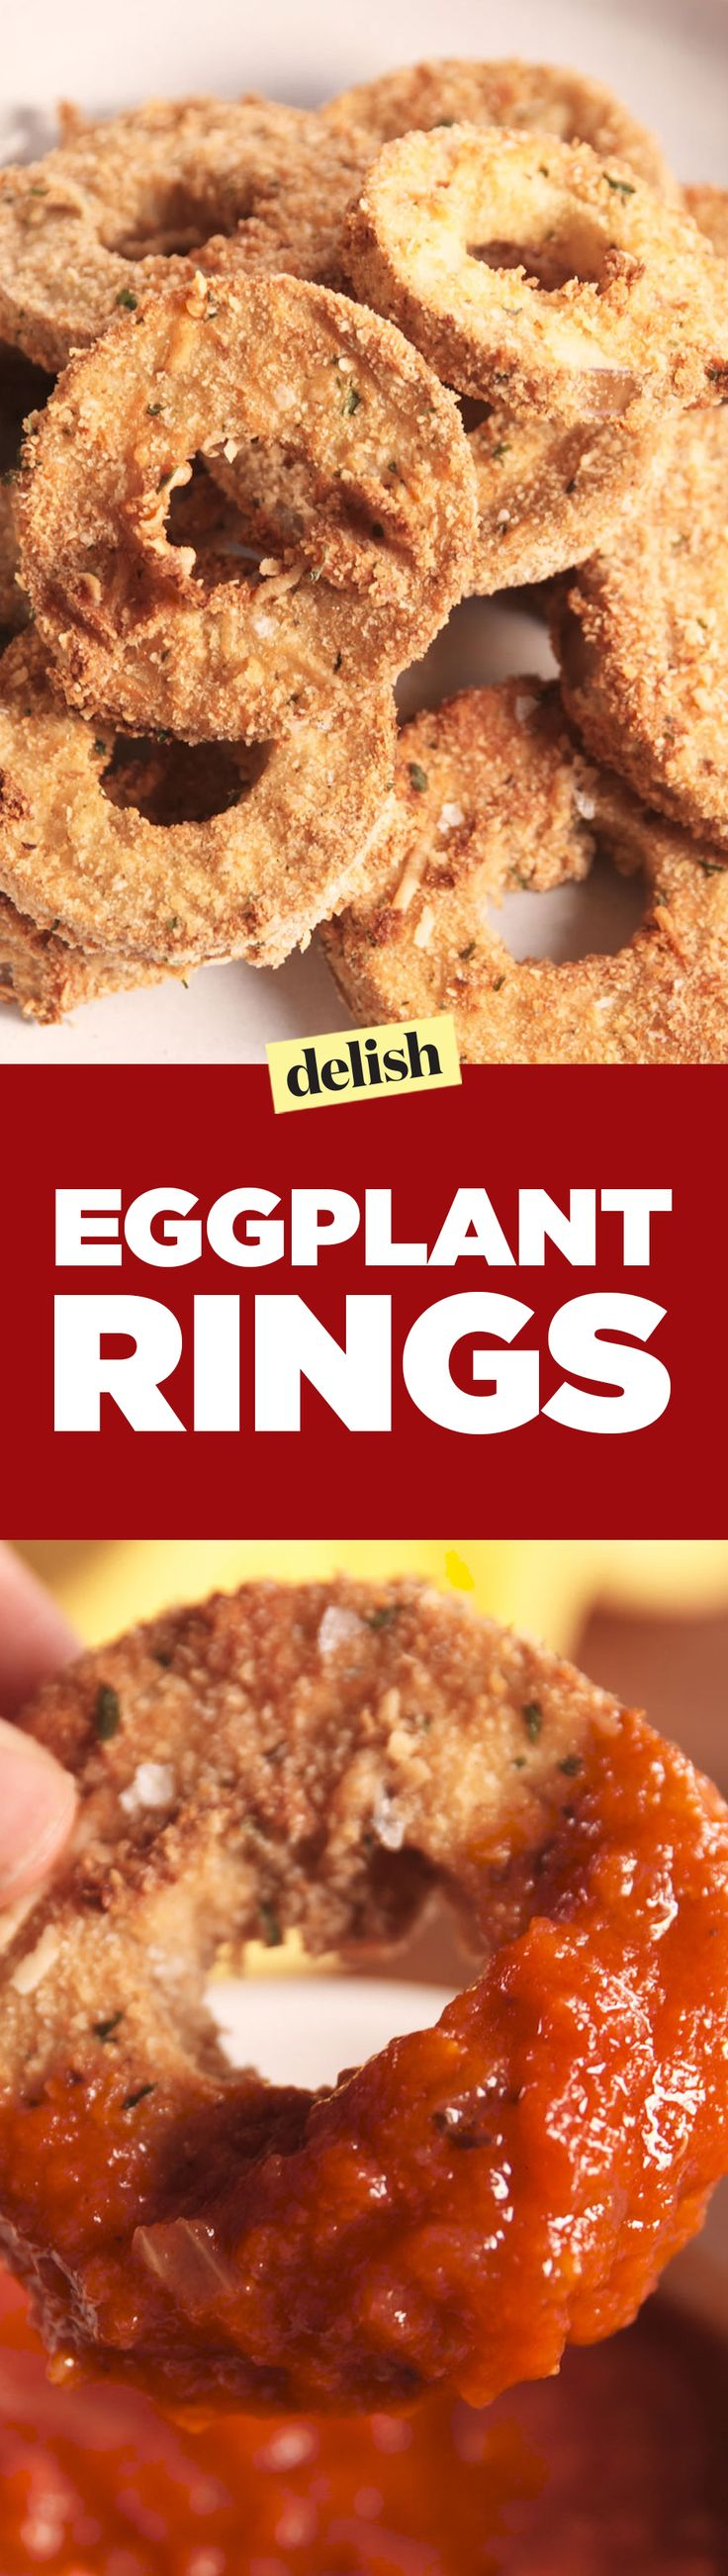 Not only do Eggplant Rings taste better than onion rings, but they're healthier, too. Get the recipe on Delish.com.